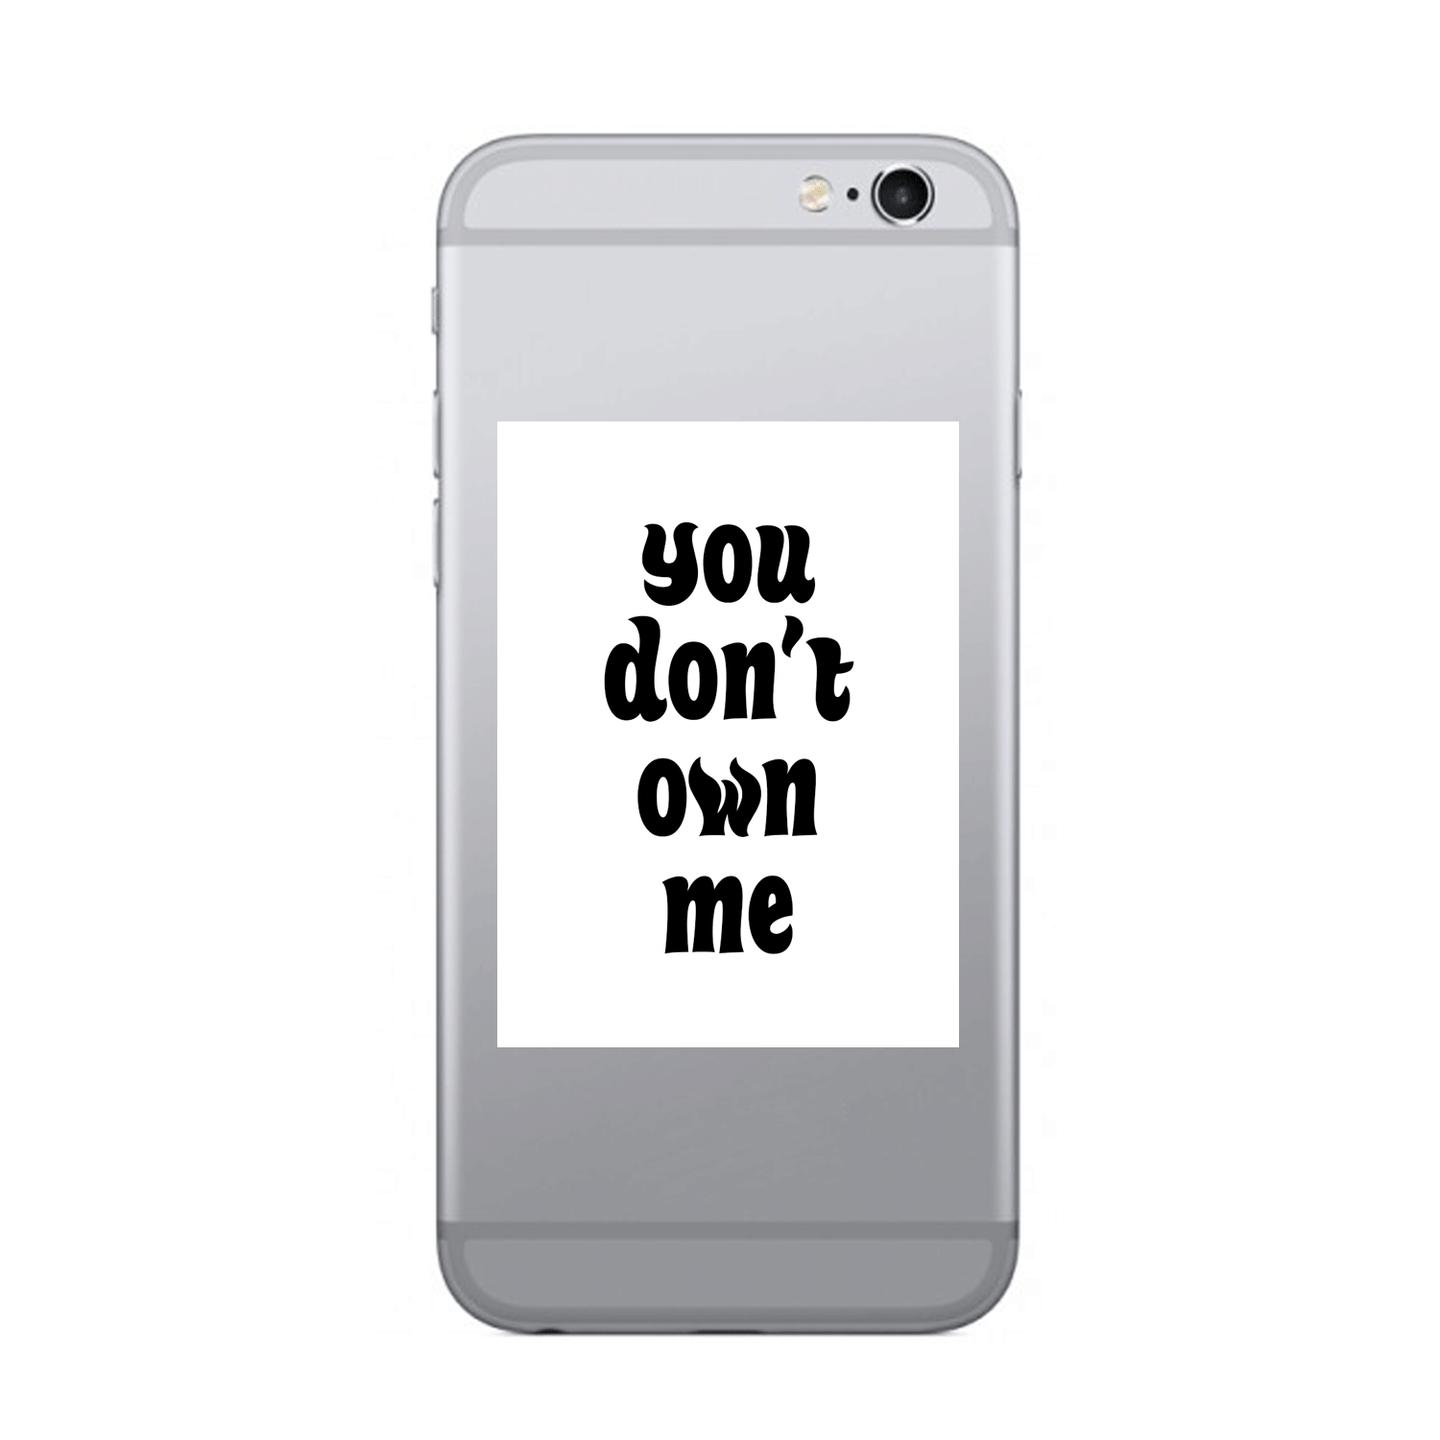 You don't own me - SELFIE STICKER